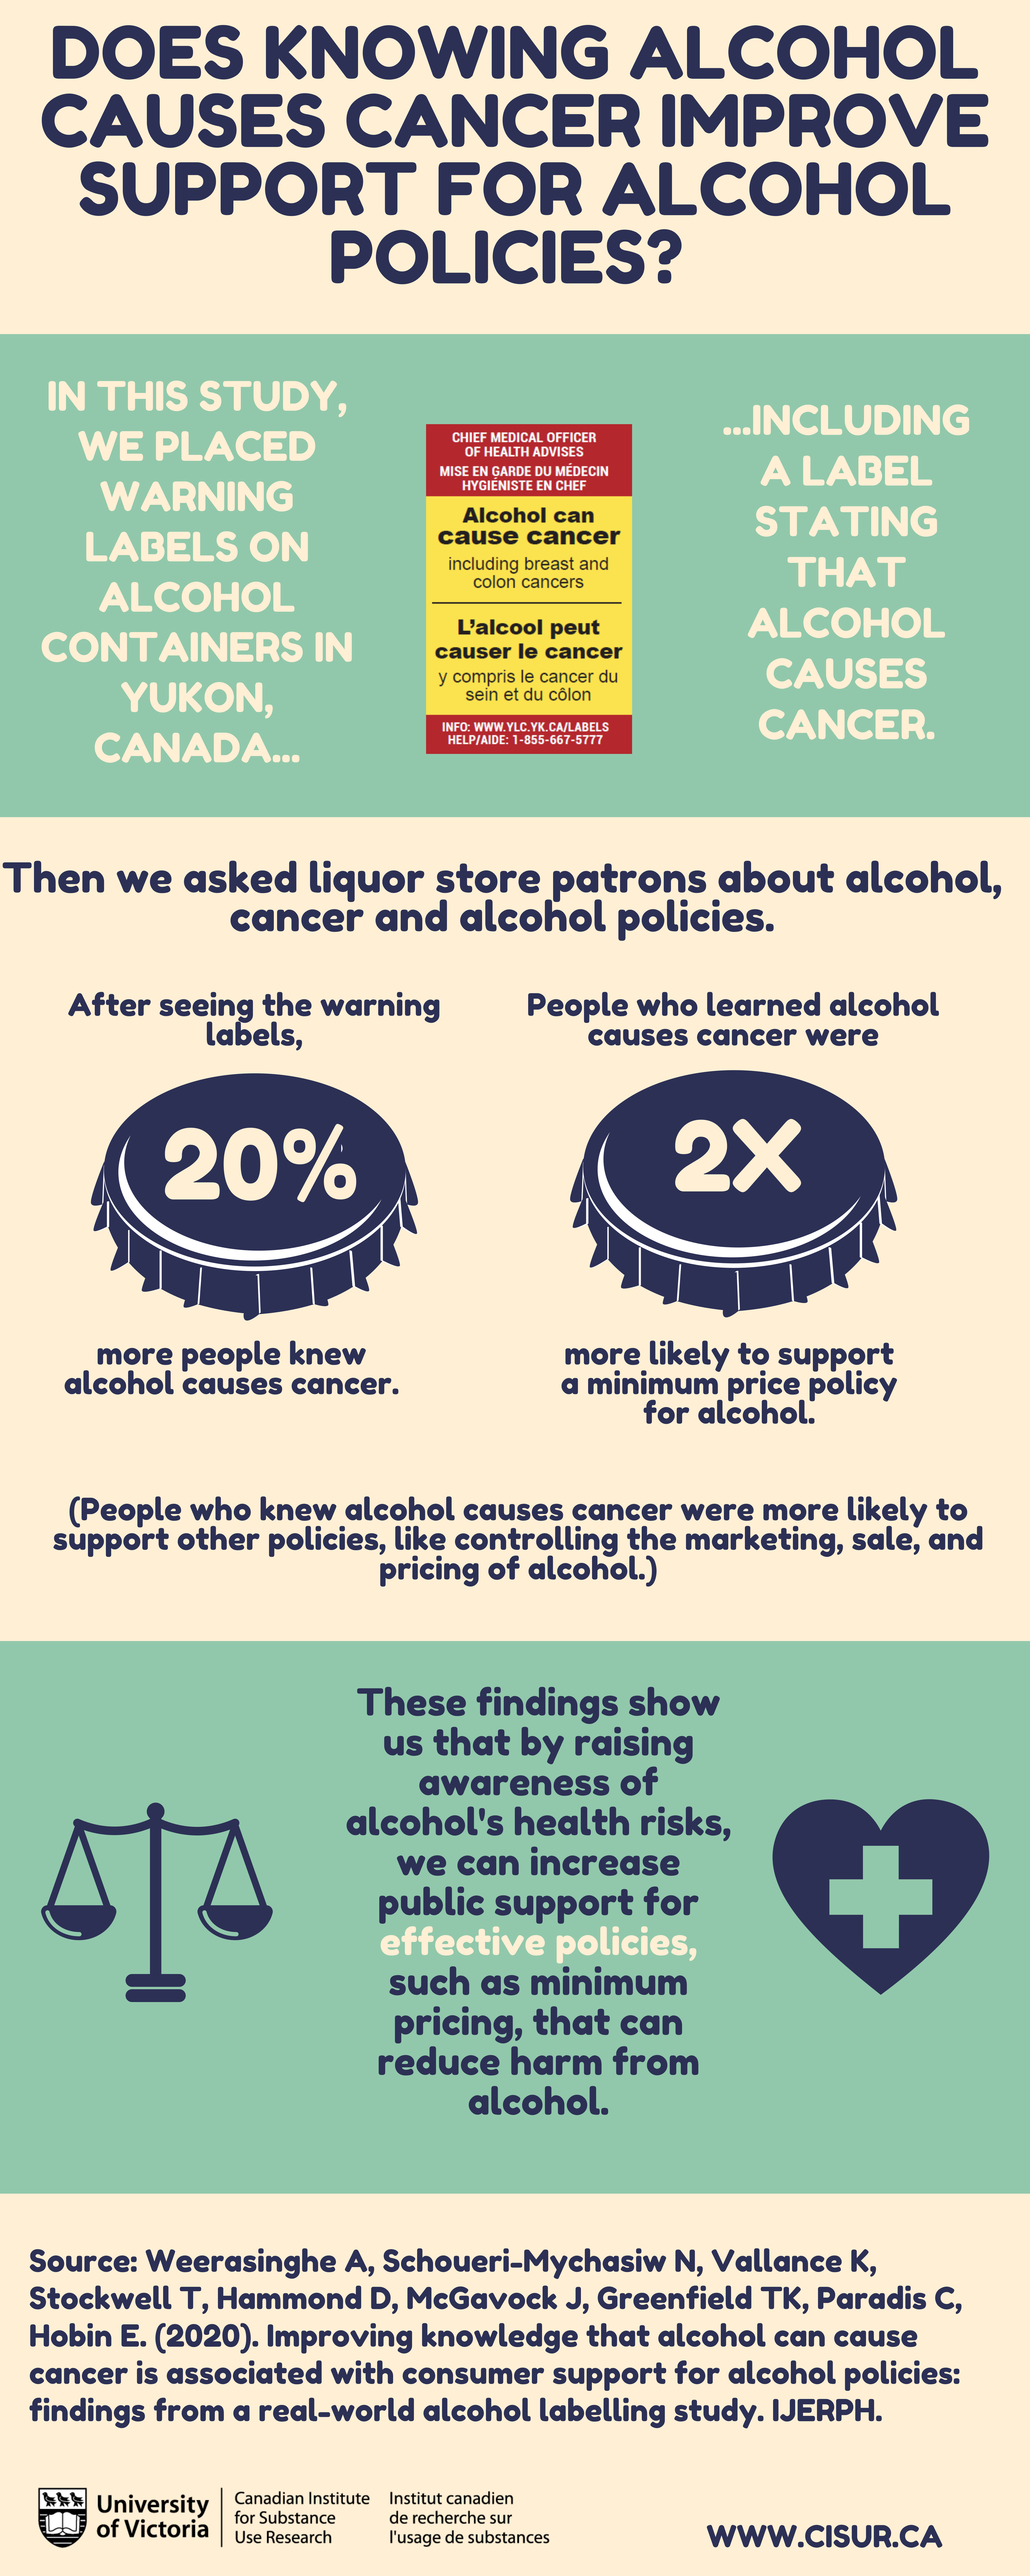 Ijerph Free Full Text Improving Knowledge That Alcohol Can Cause Cancer Is Associated With Consumer Support For Alcohol Policies Findings From A Real World Alcohol Labelling Study Html